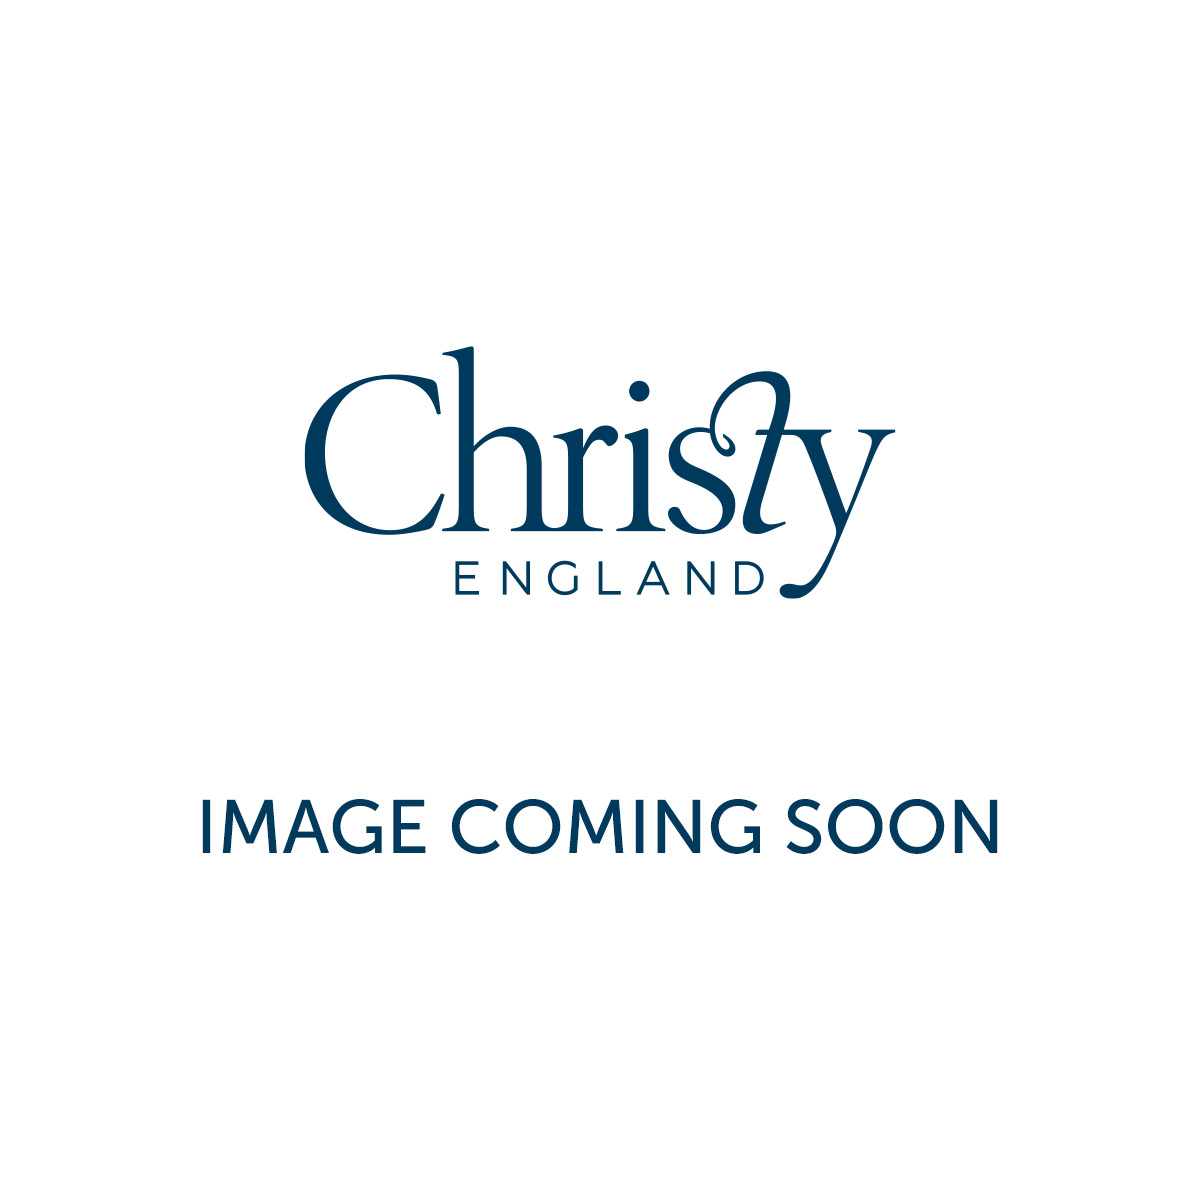 Christy Truro Bed Linen Set pillows